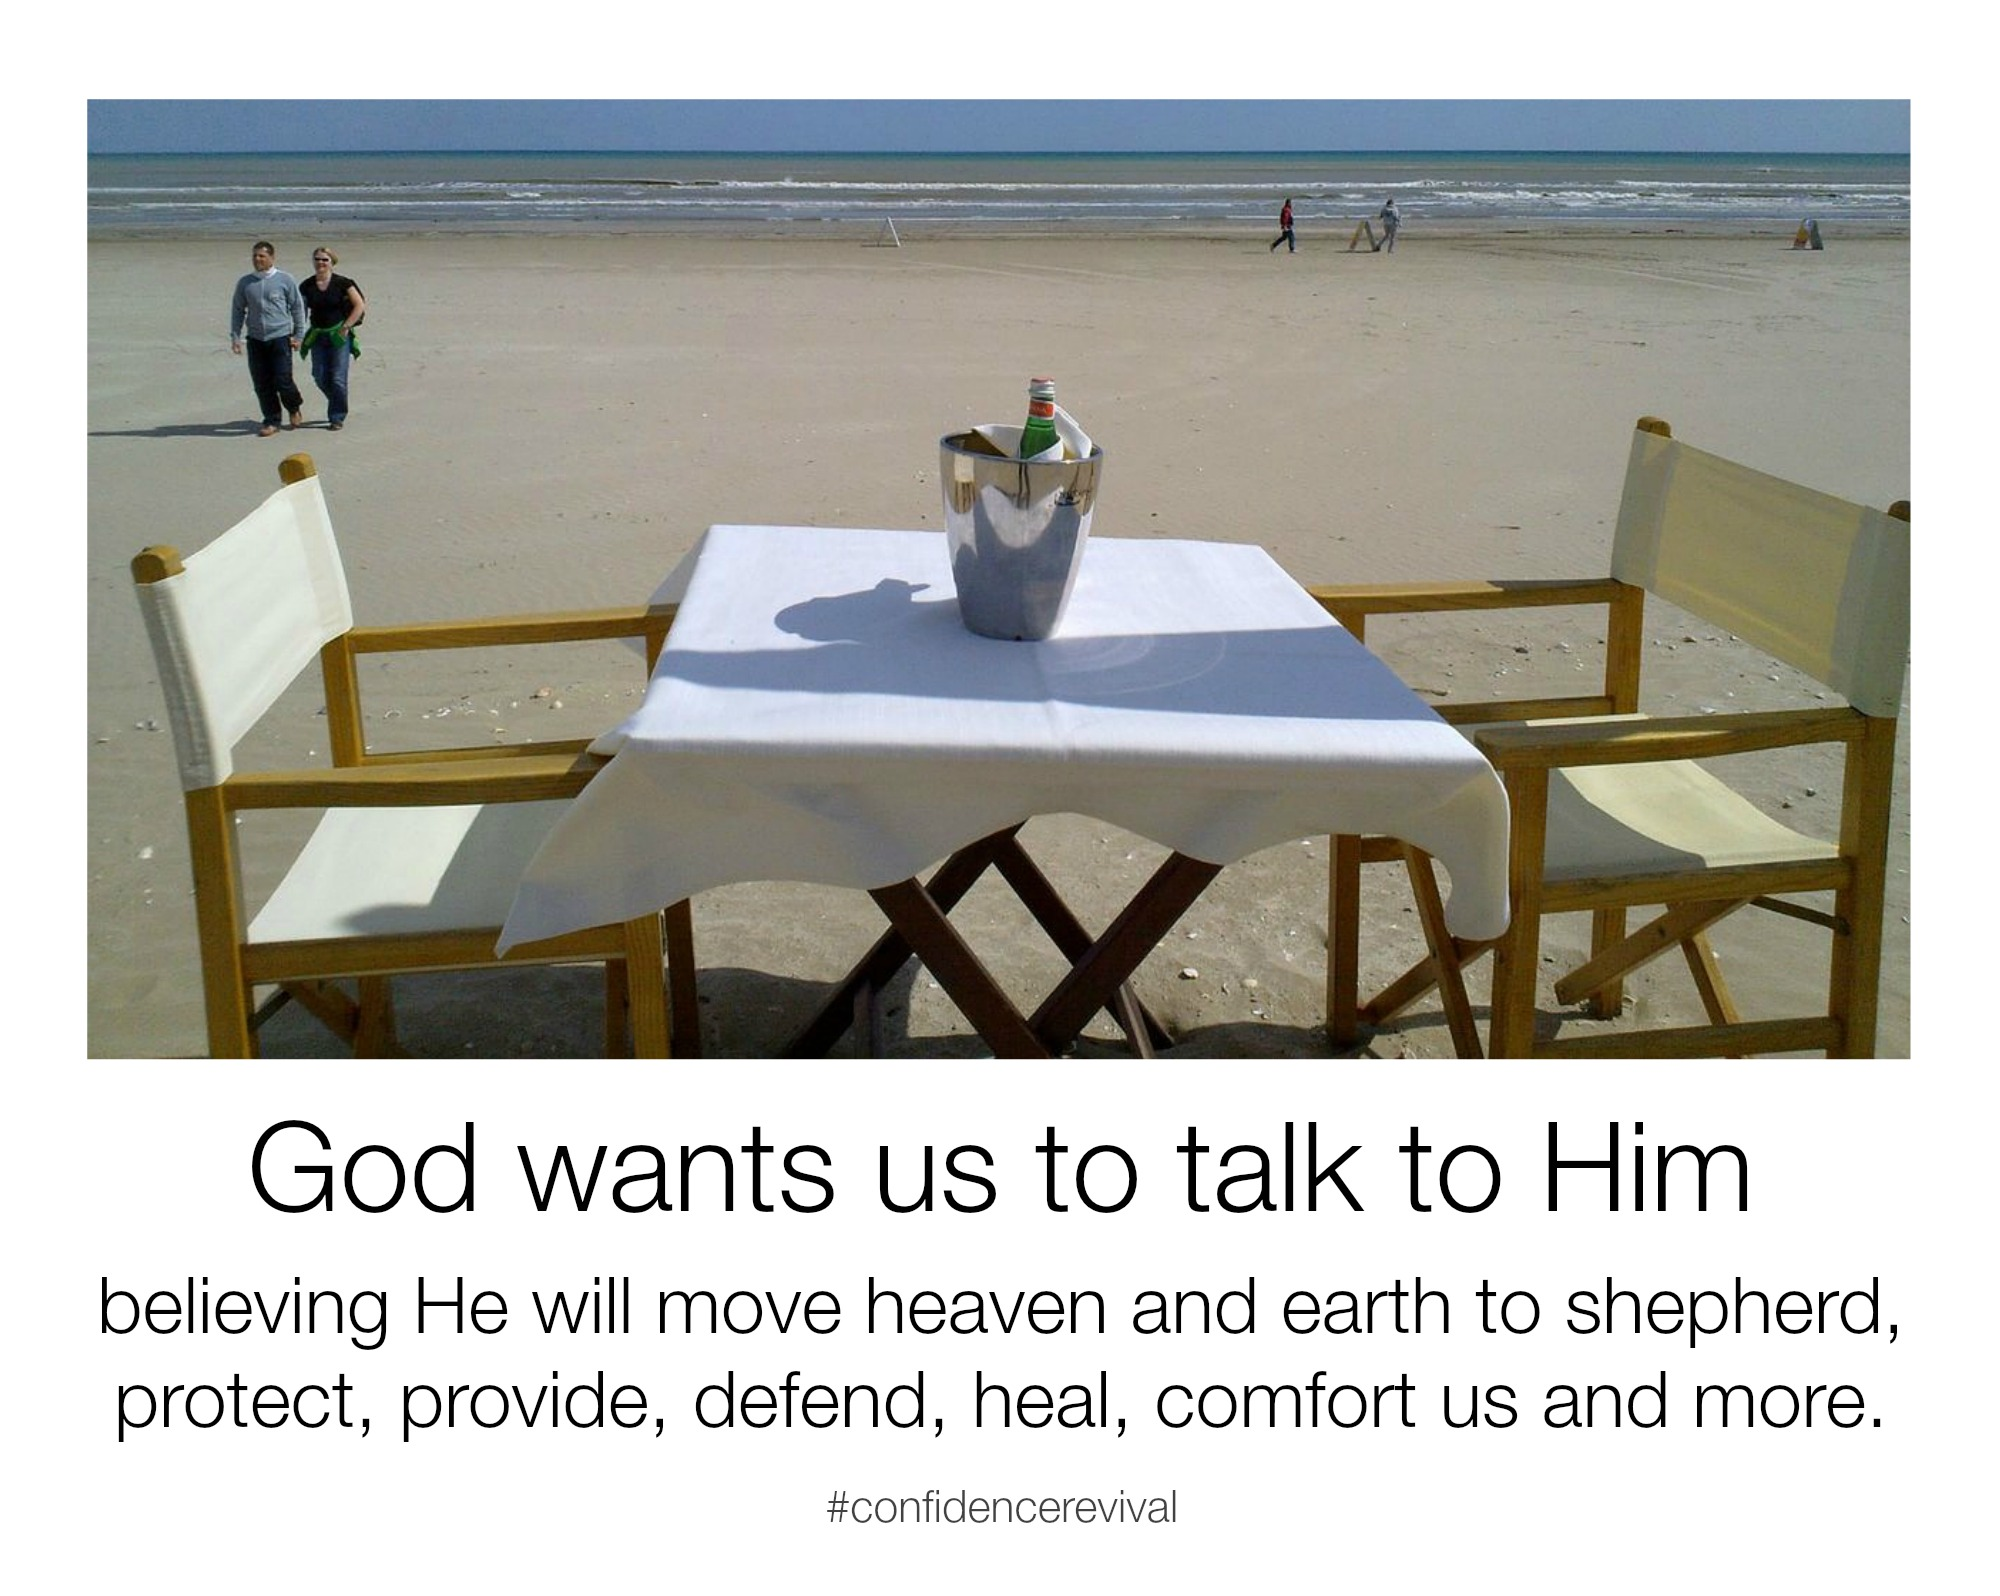 God wants to communicate with us